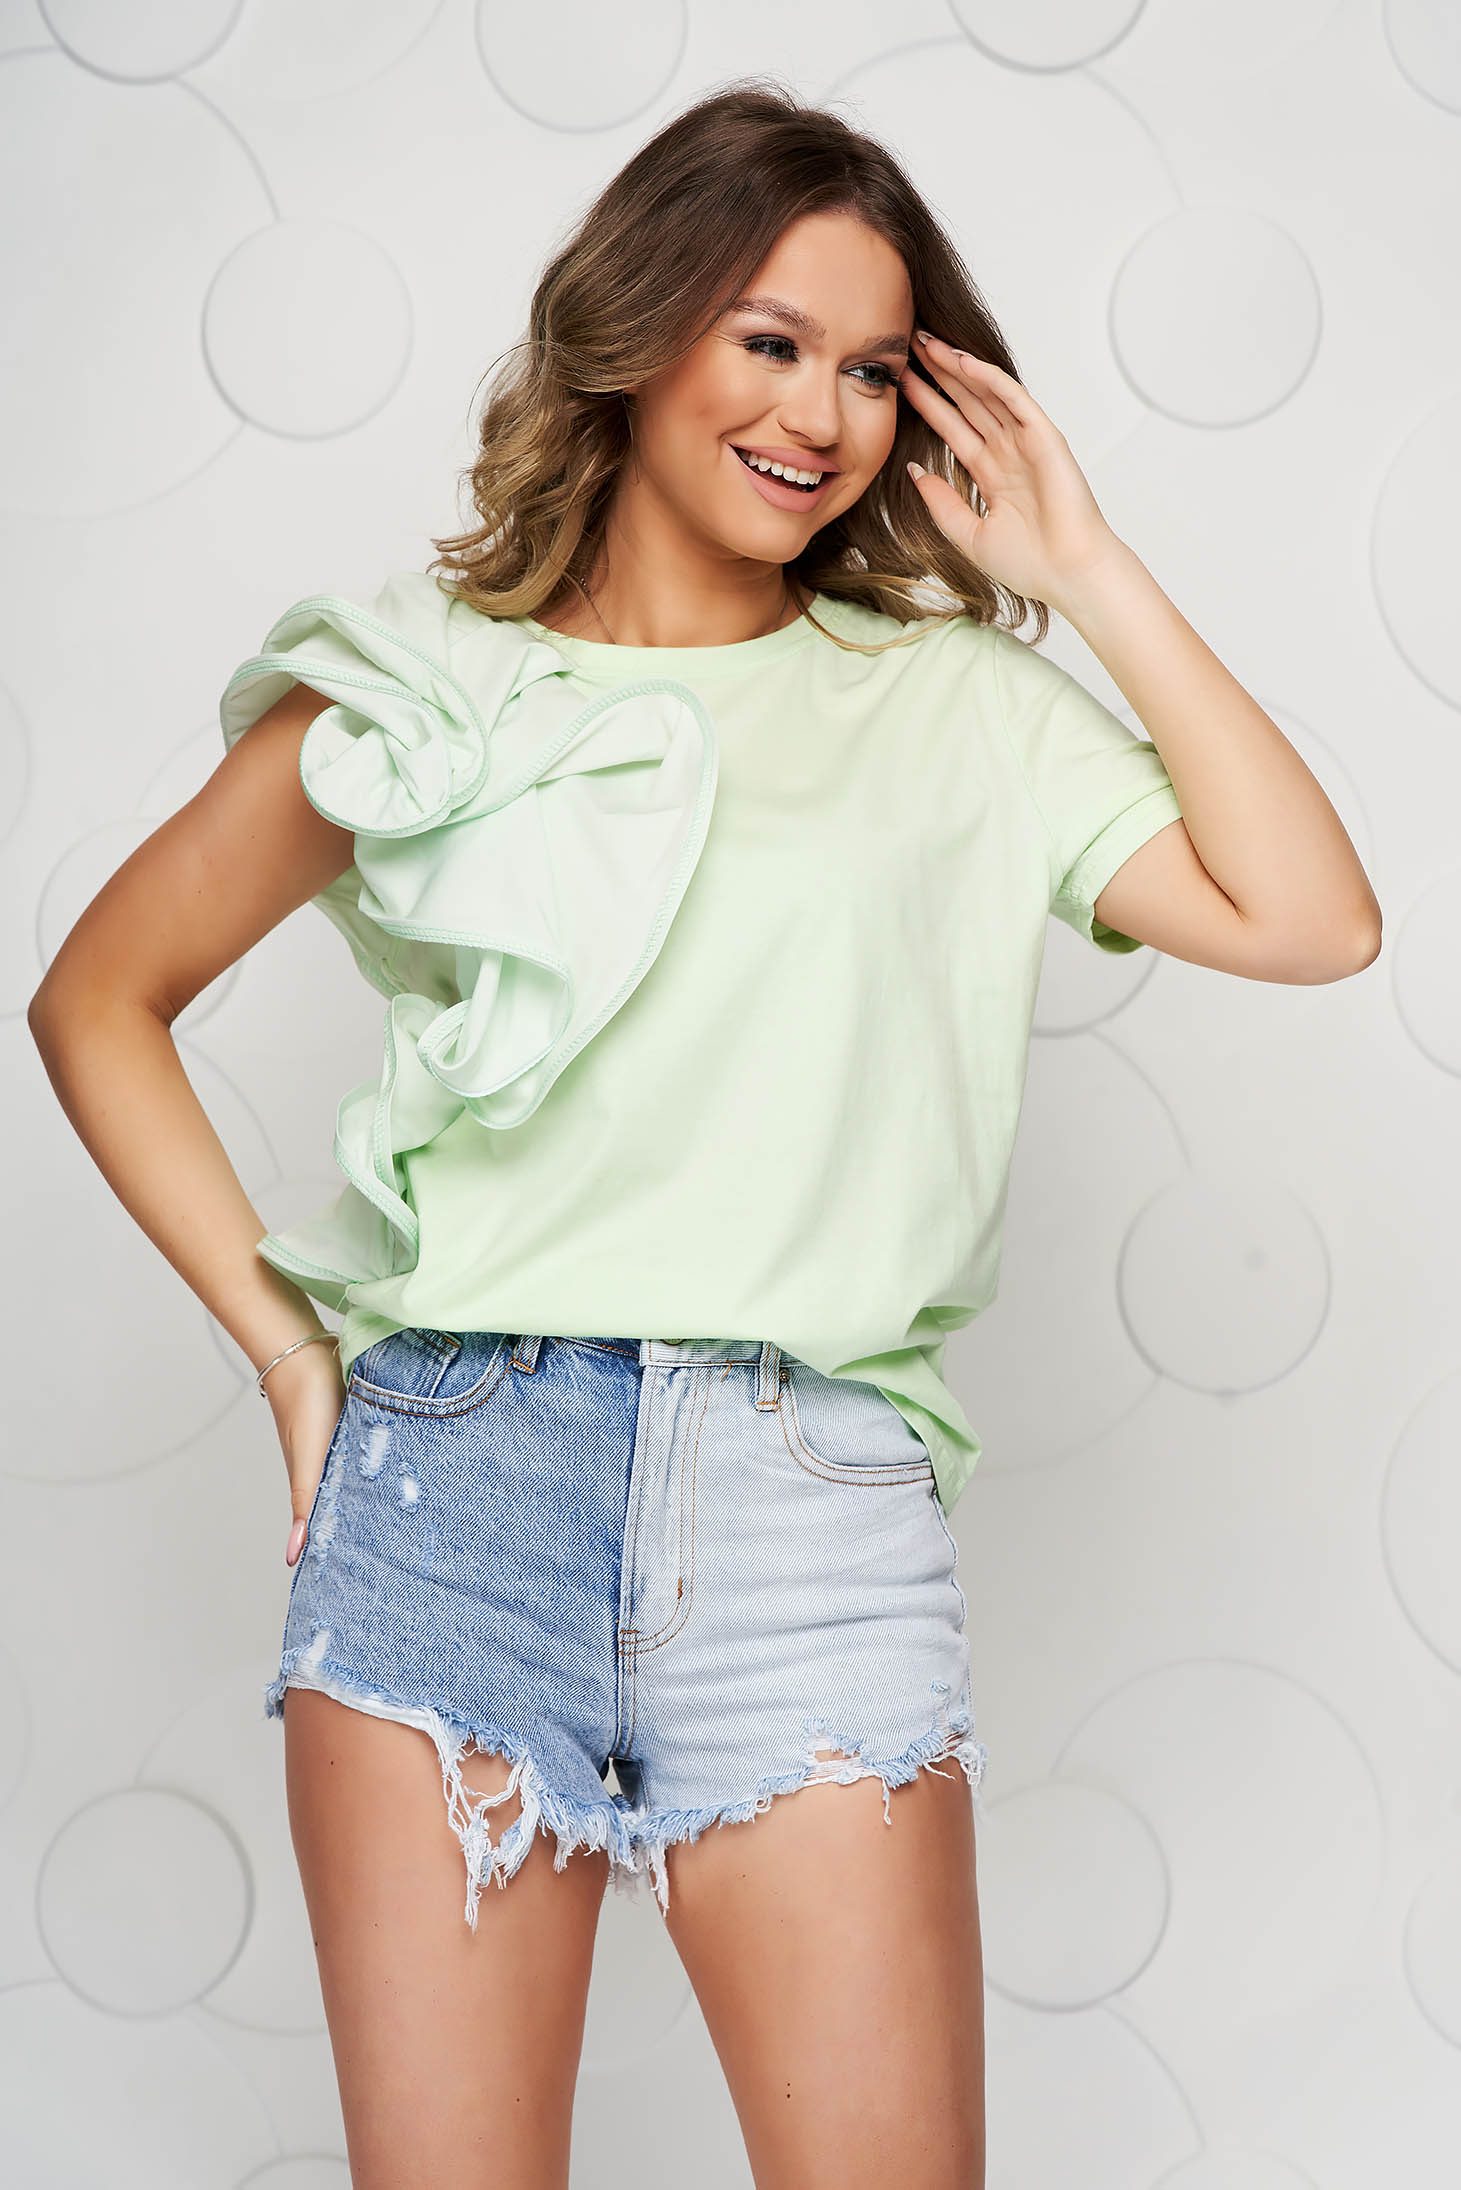 Lightgreen women`s blouse slightly elastic cotton with ruffle details loose fit